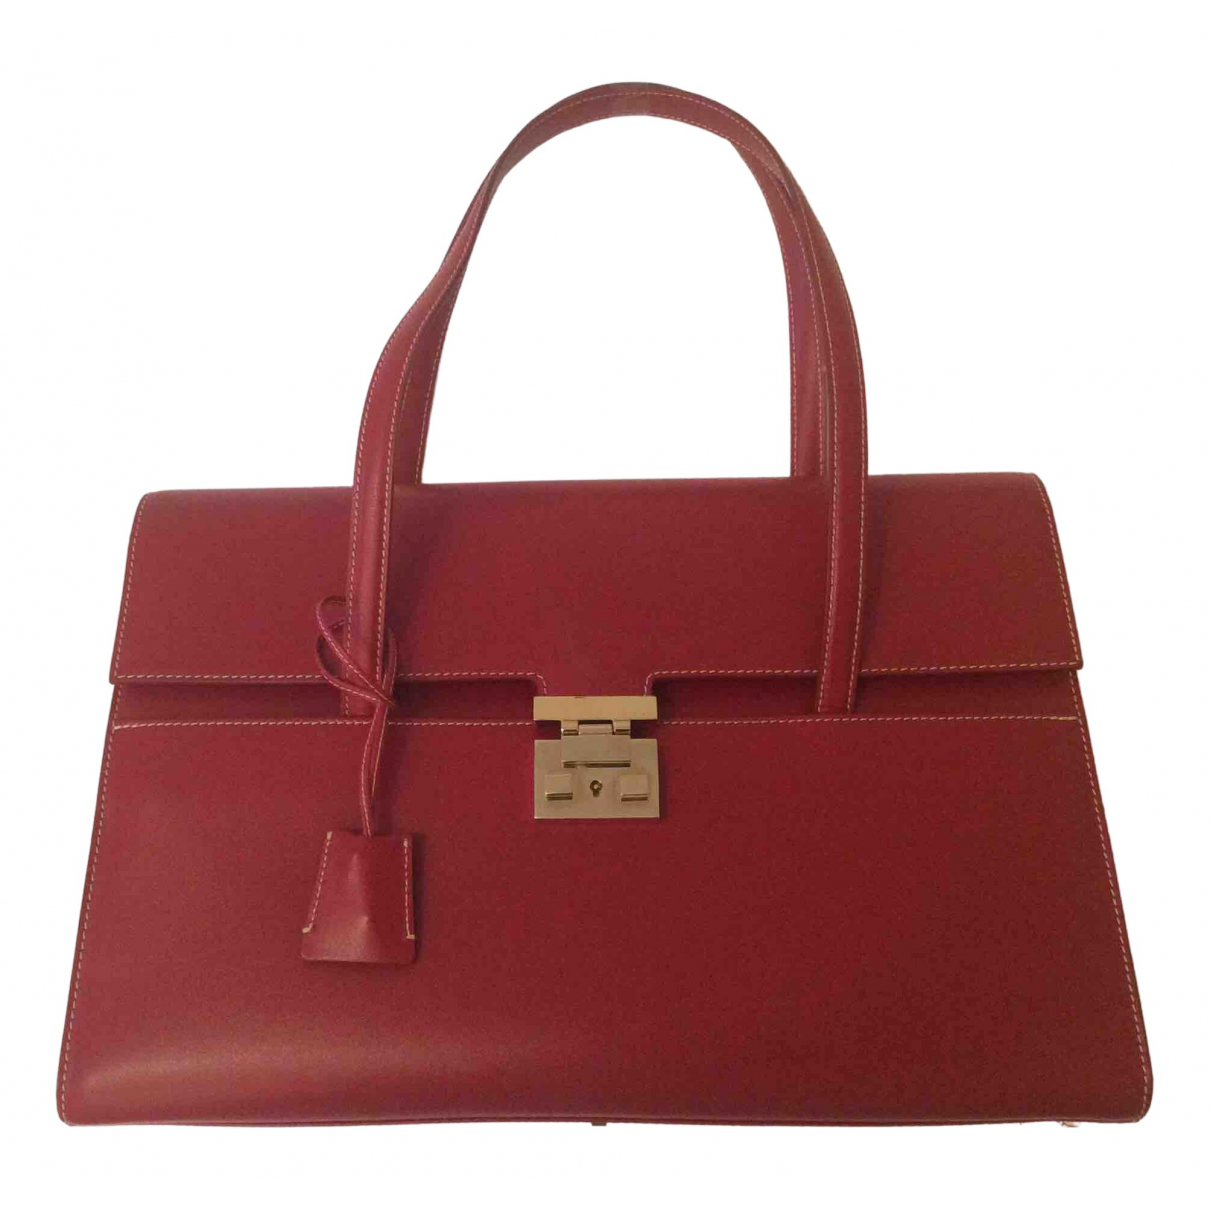 Gucci Padlock Red Leather handbag for Women \N